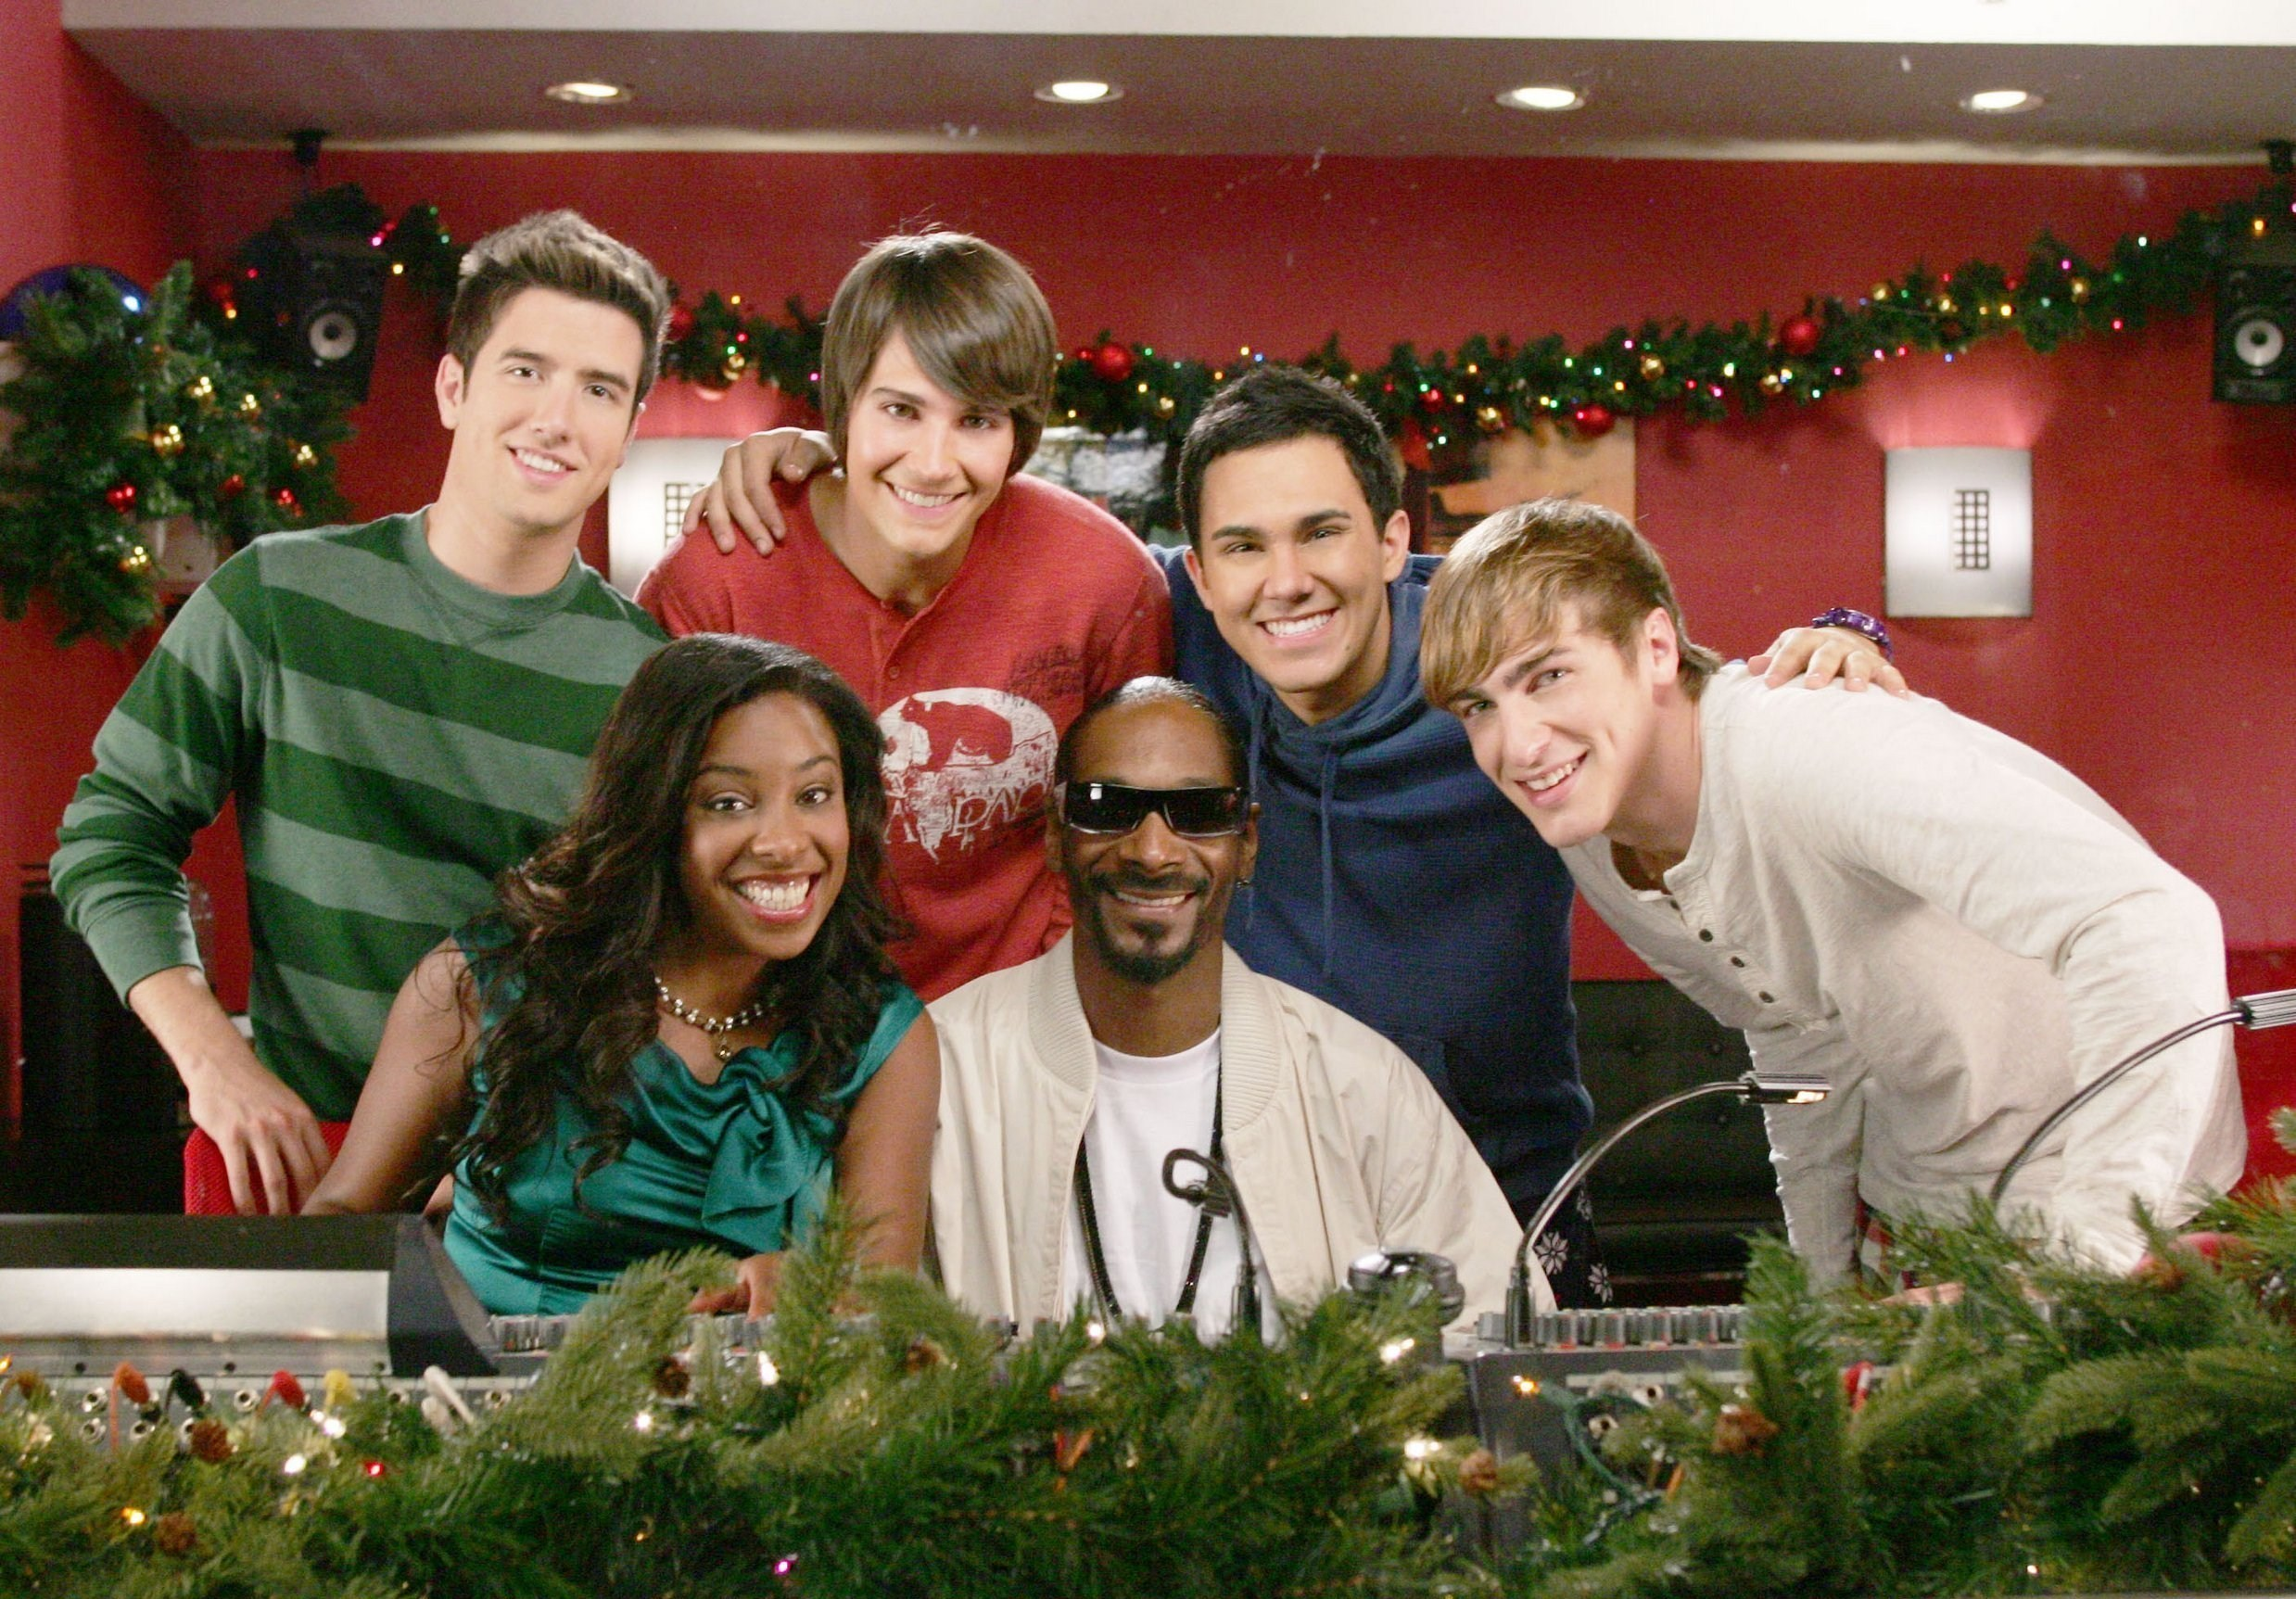 big time rush images big time christmas hd wallpaper and background photos - Big Time Rush Christmas